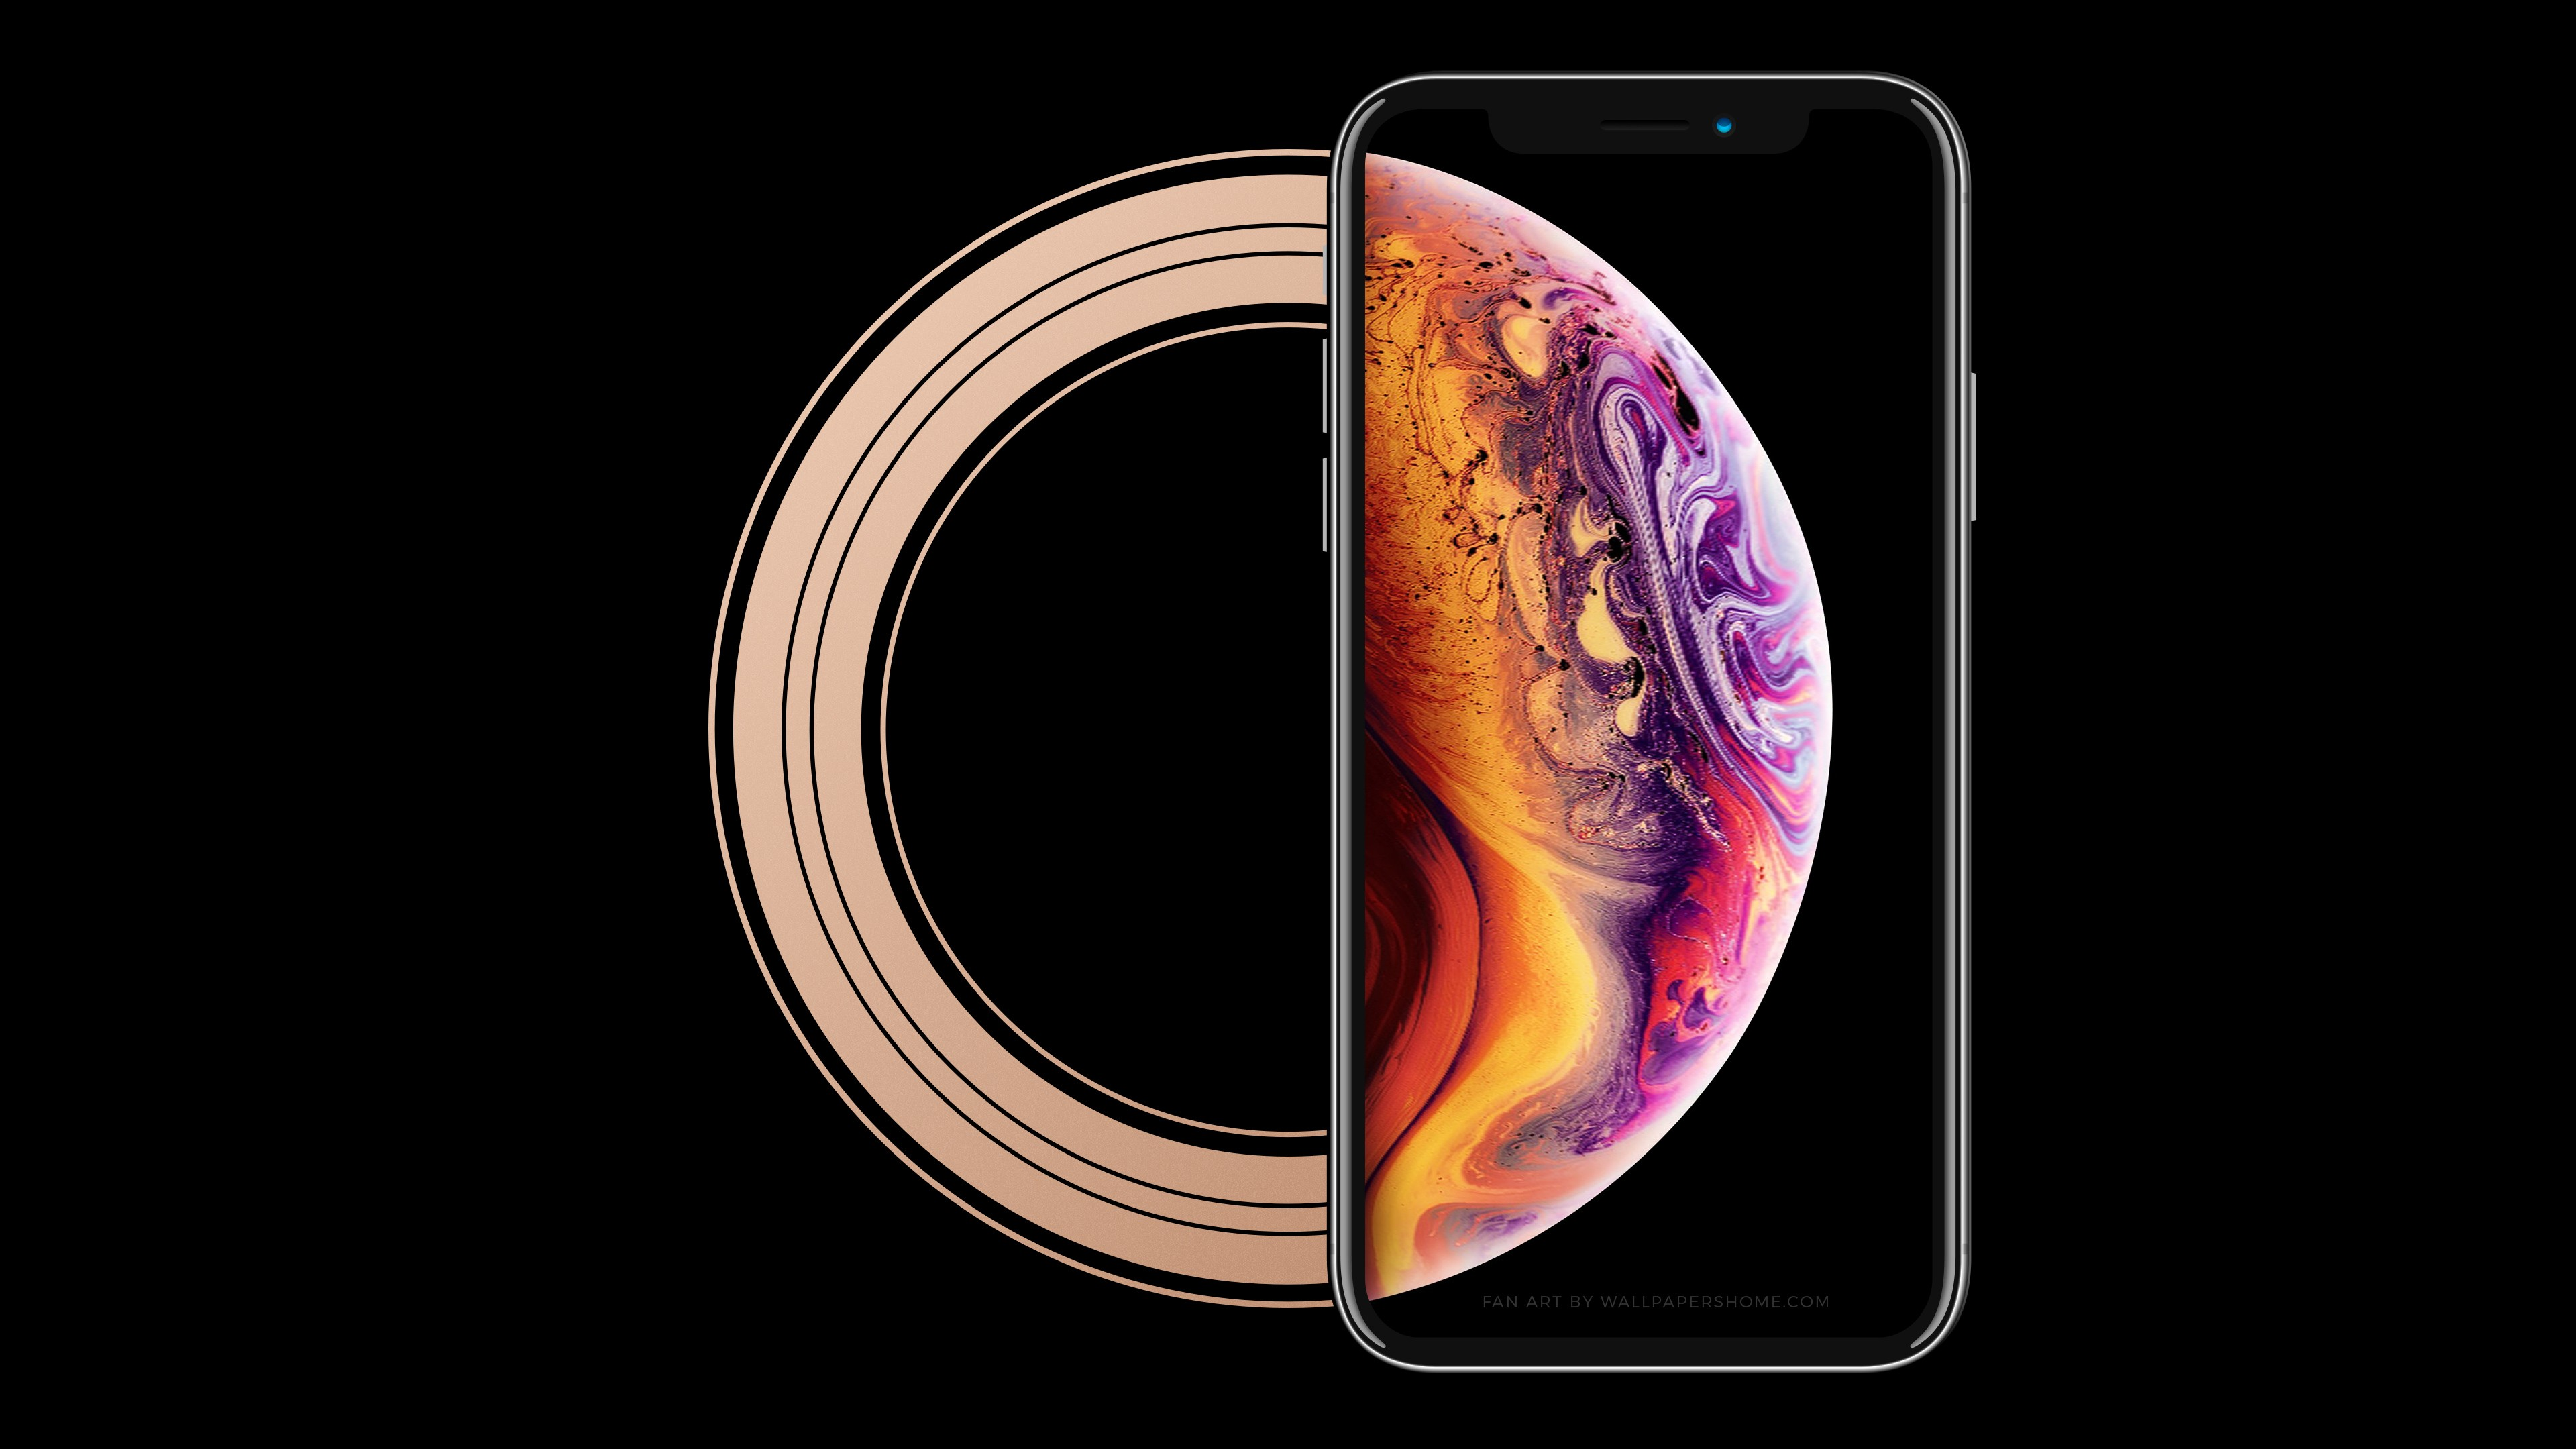 Sfondo Iphone Xs Hd Reformwi Org